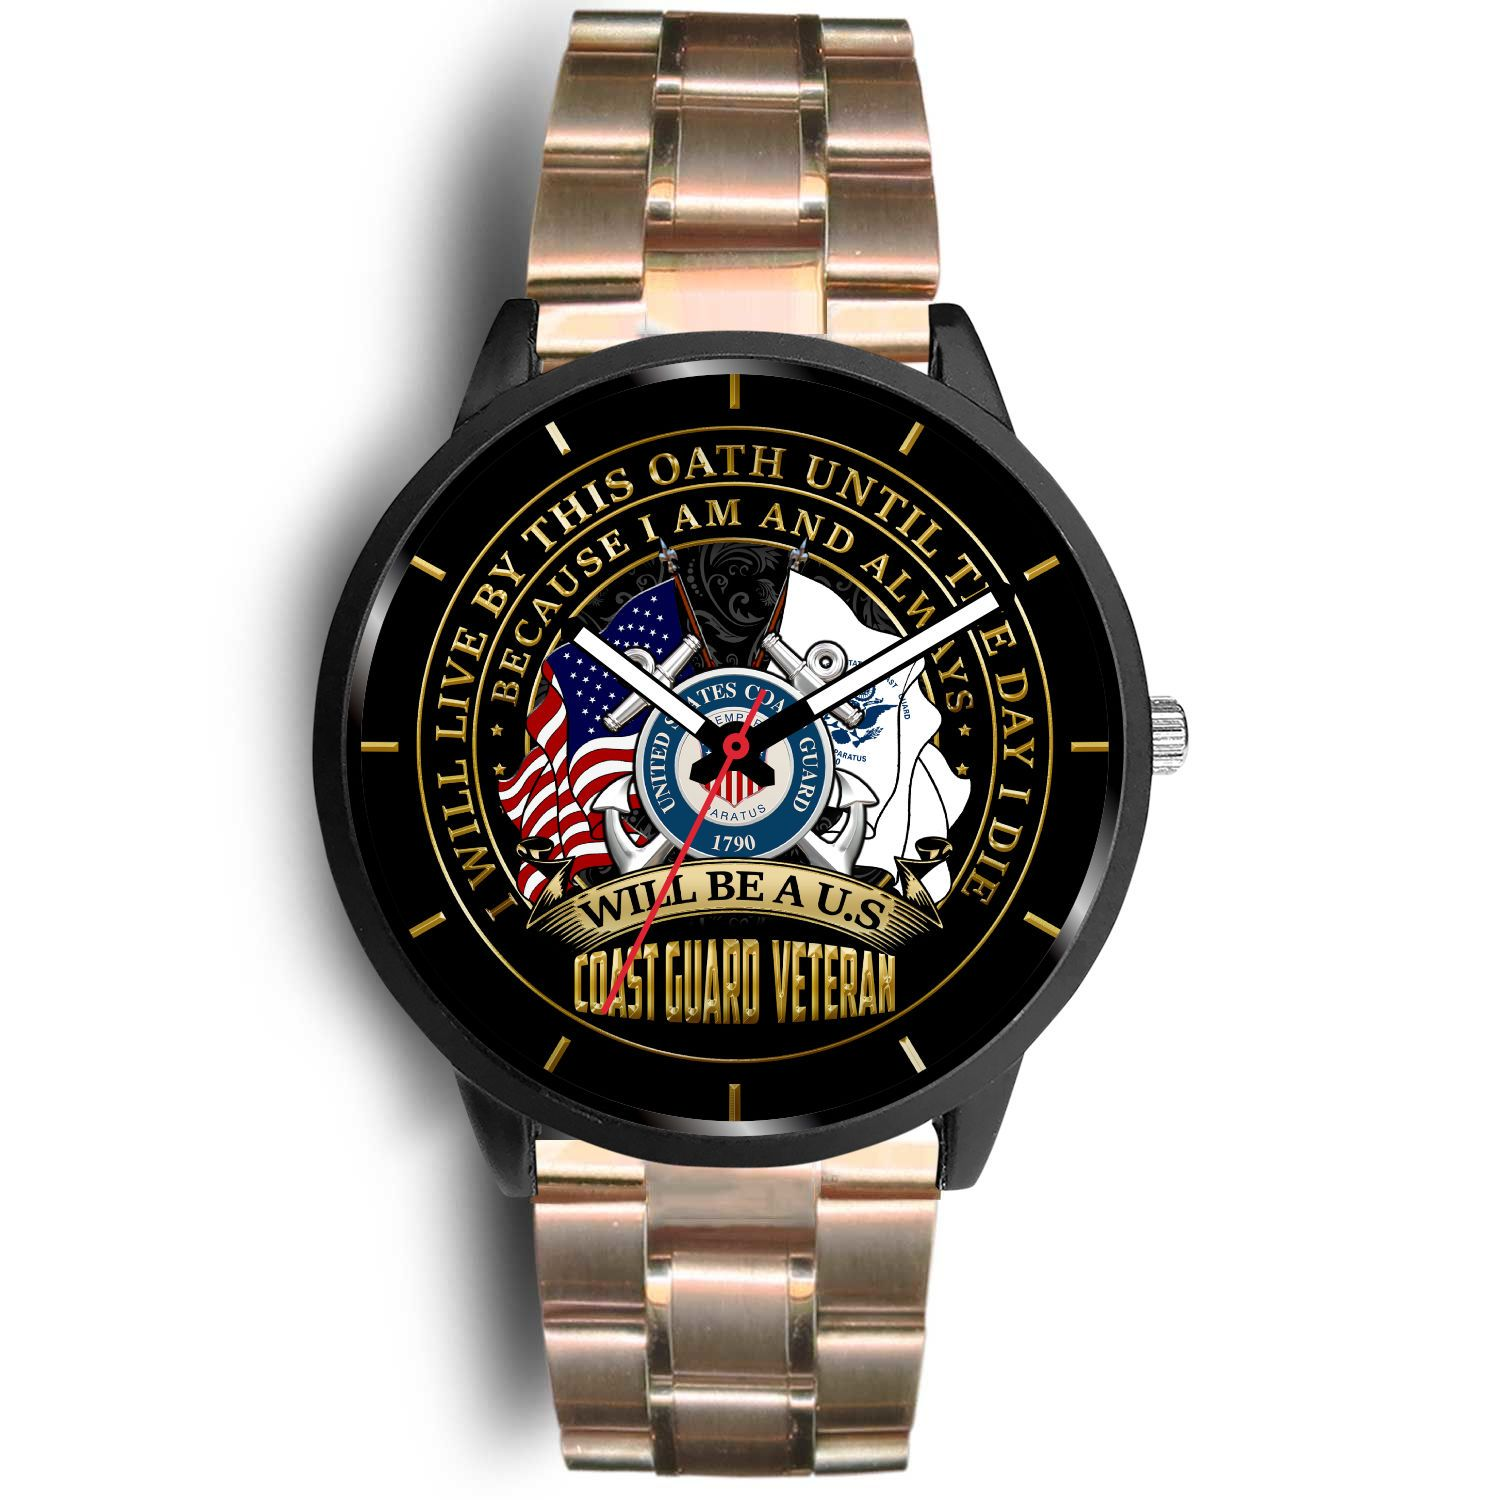 i-will-live_546430f0-bf14-11d7-40b0-647c1fcc55f1 I WILL LIVE BY THIS OATH UNTIL THE DAY I DIE BECAUSE I AM AND ALWAYS WILL BE A U.S COAST GUARD VETERAN WATCH  %tag